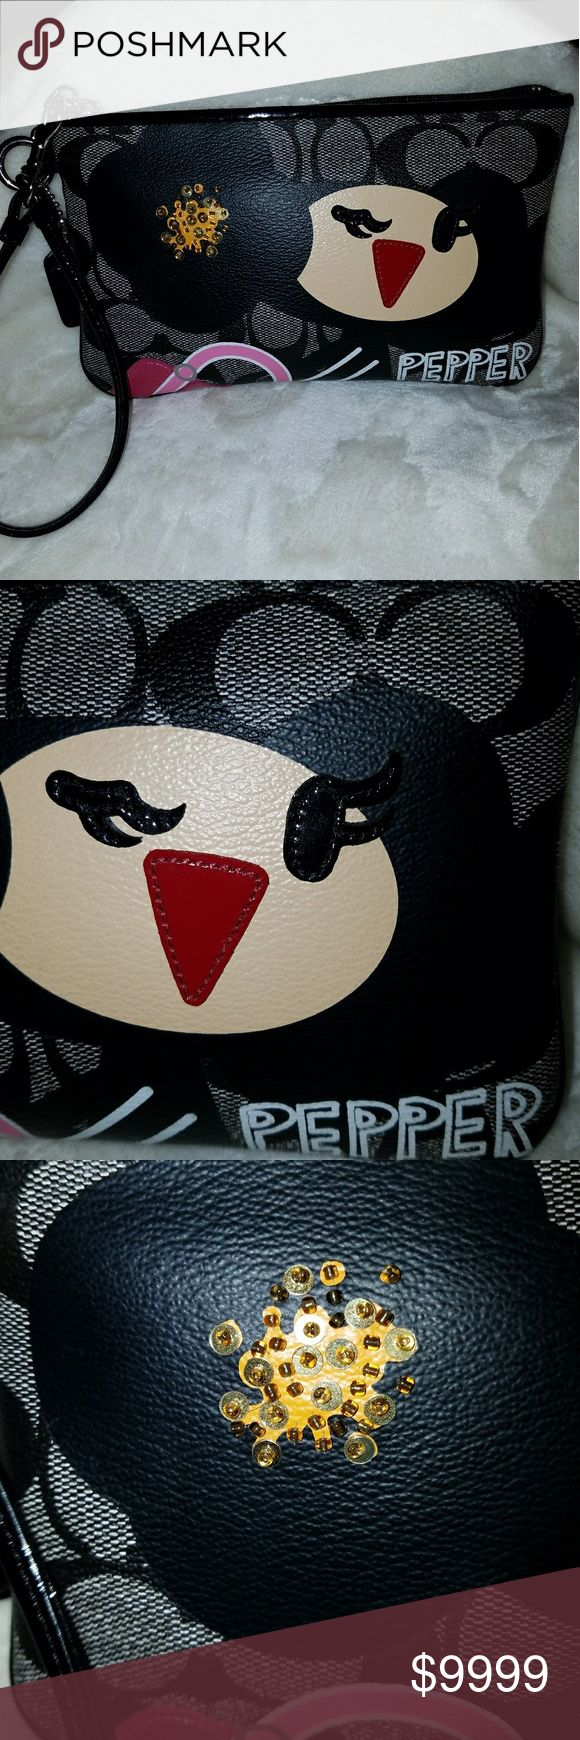 ❤RARE❤Coach🌺Poppy🌺Pepper🌺Chan. LG. Wristlet Coach🌺Poppy🌺Pepper Chan. Lg. Wristlet. SHE is so adorable! 🐱Dark Grey backdrop, with Coach signature C's, in a coated vinyl. 🖤Black hair, ❤Red nose/lips, 🖤Black lashes, all in Patent Leather. Add a spray of 🥇Gold☄Sequin Bling (all on & tight) in her hair. Trimmed in 💖Dark💗Light Pink Purse, add Pepper name in graffiti. Flip over to the back, Coach🌺Poppy🌺branding. Inside, 1 slip pocket, & 🖤patent leather trim, 🖤hand tag,🥈Silver hard…